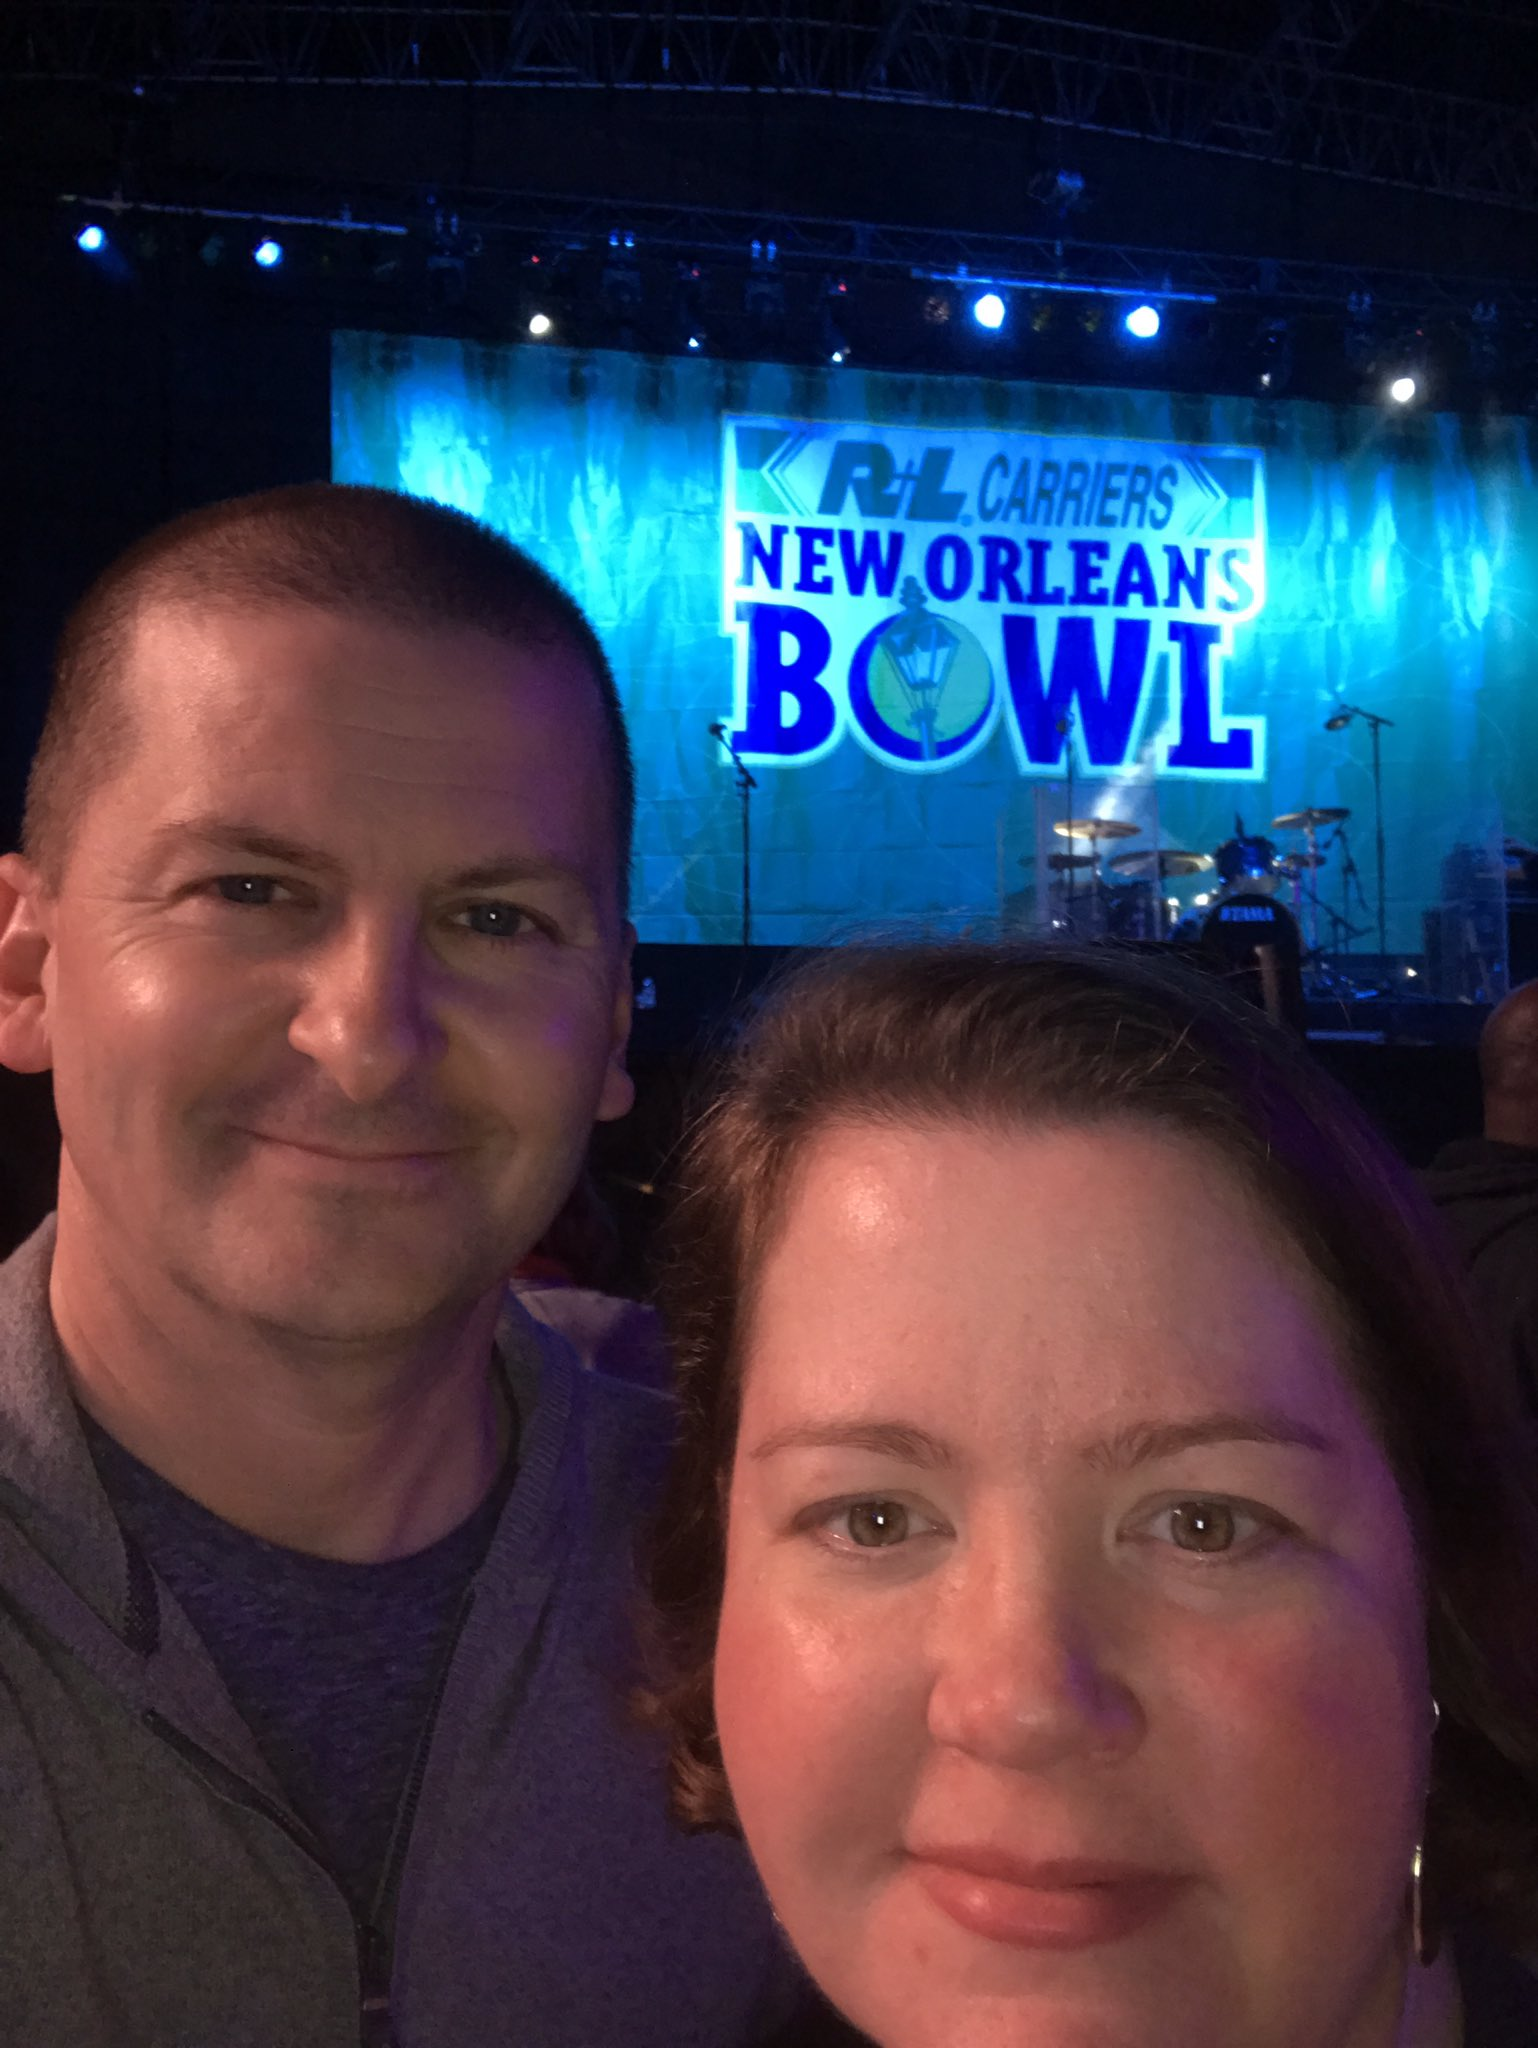 Date night! Waiting for @ginblossoms & @EzraliteArmy #rlbowl #championssquare https://t.co/vB0EzcHk6Q